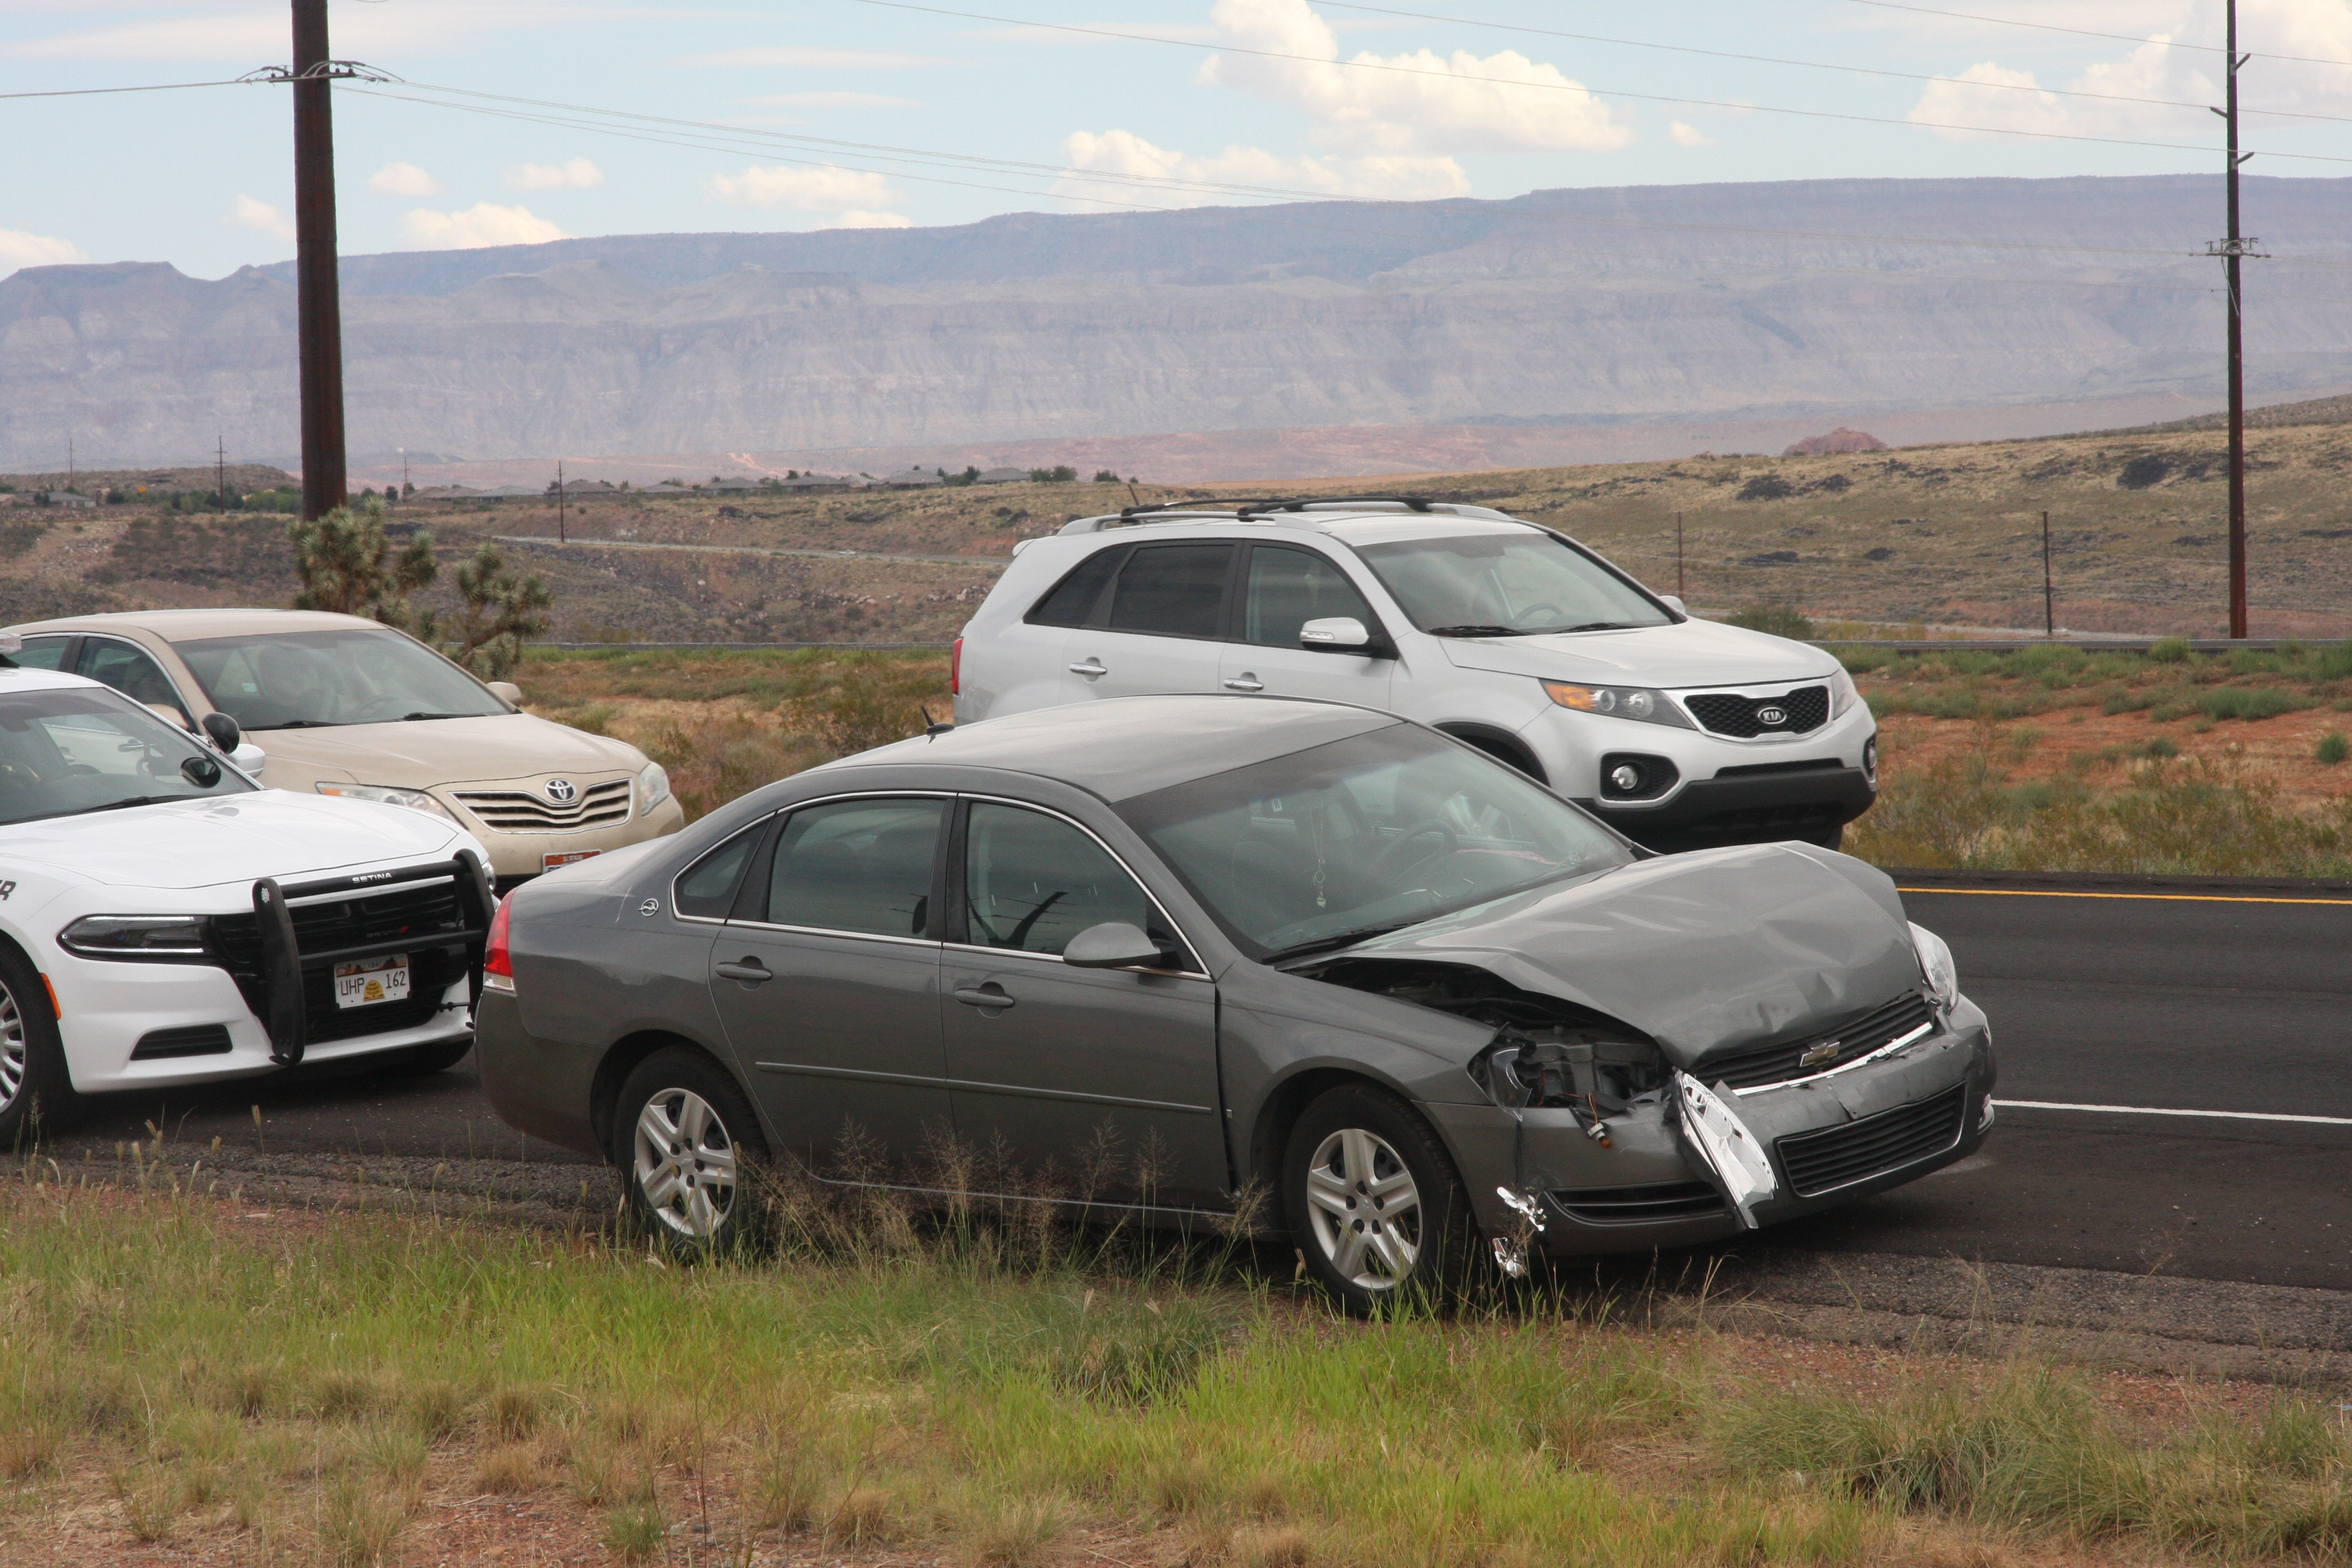 Driver receives minor injuries after rear end collision on I 15